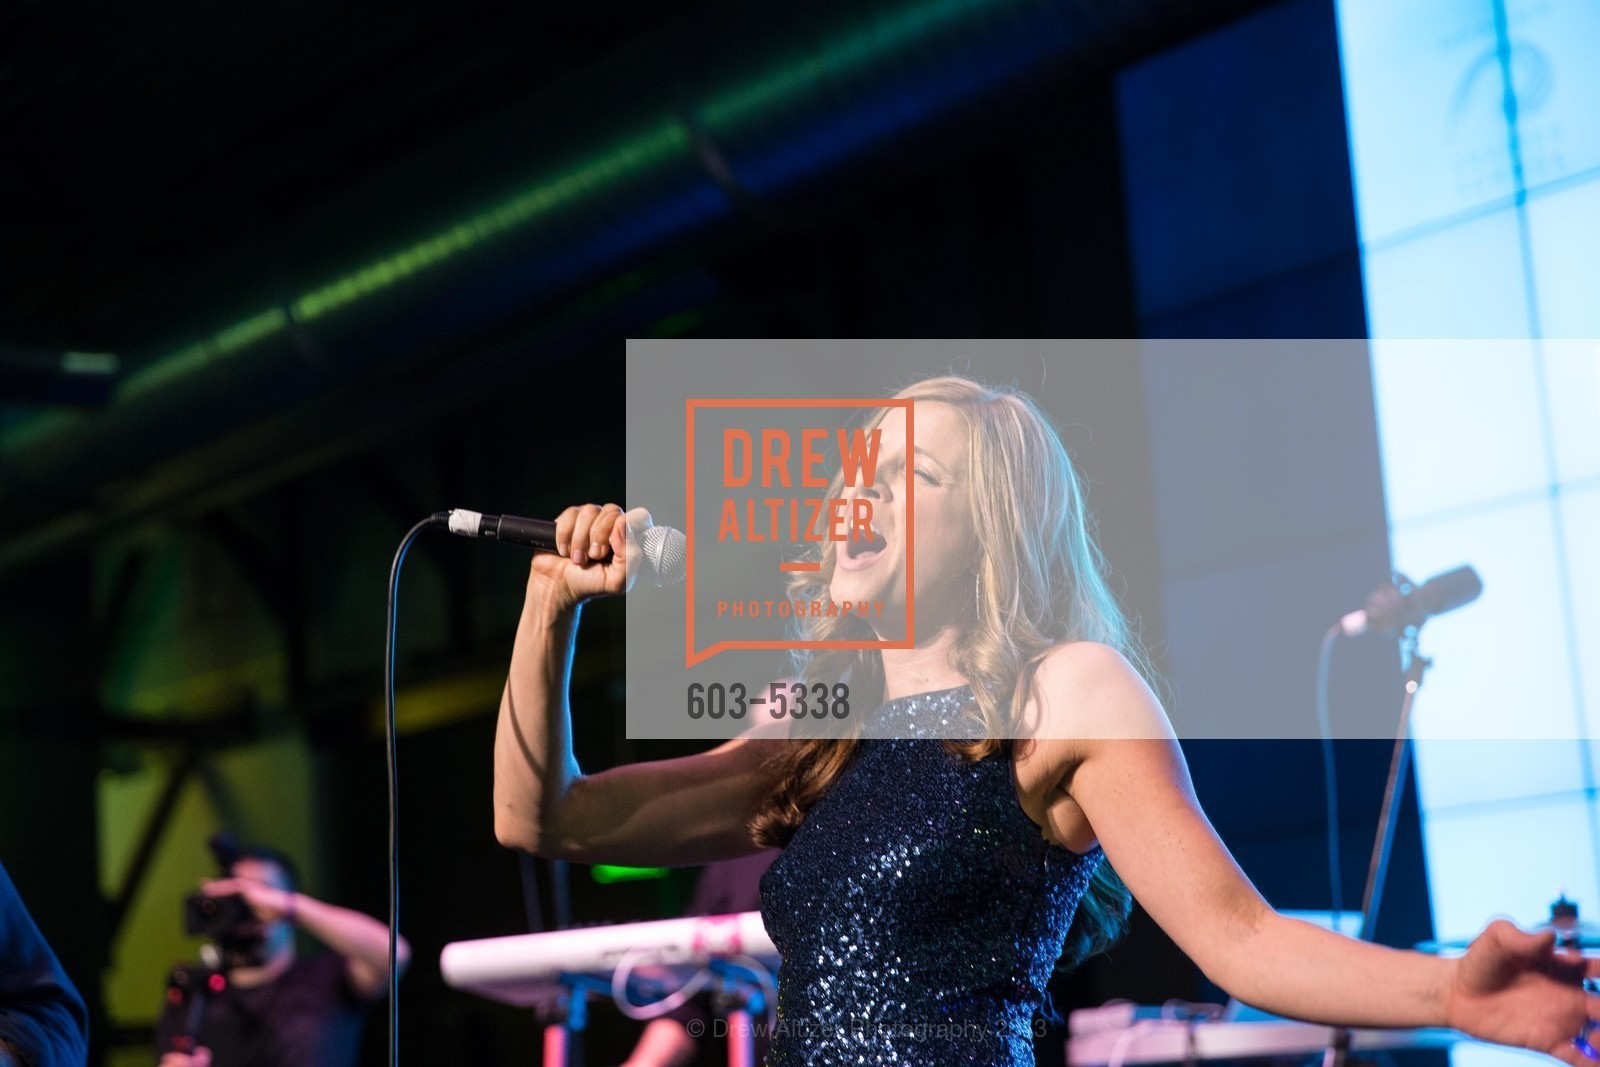 Performance By Coverflow, Photo #603-5338